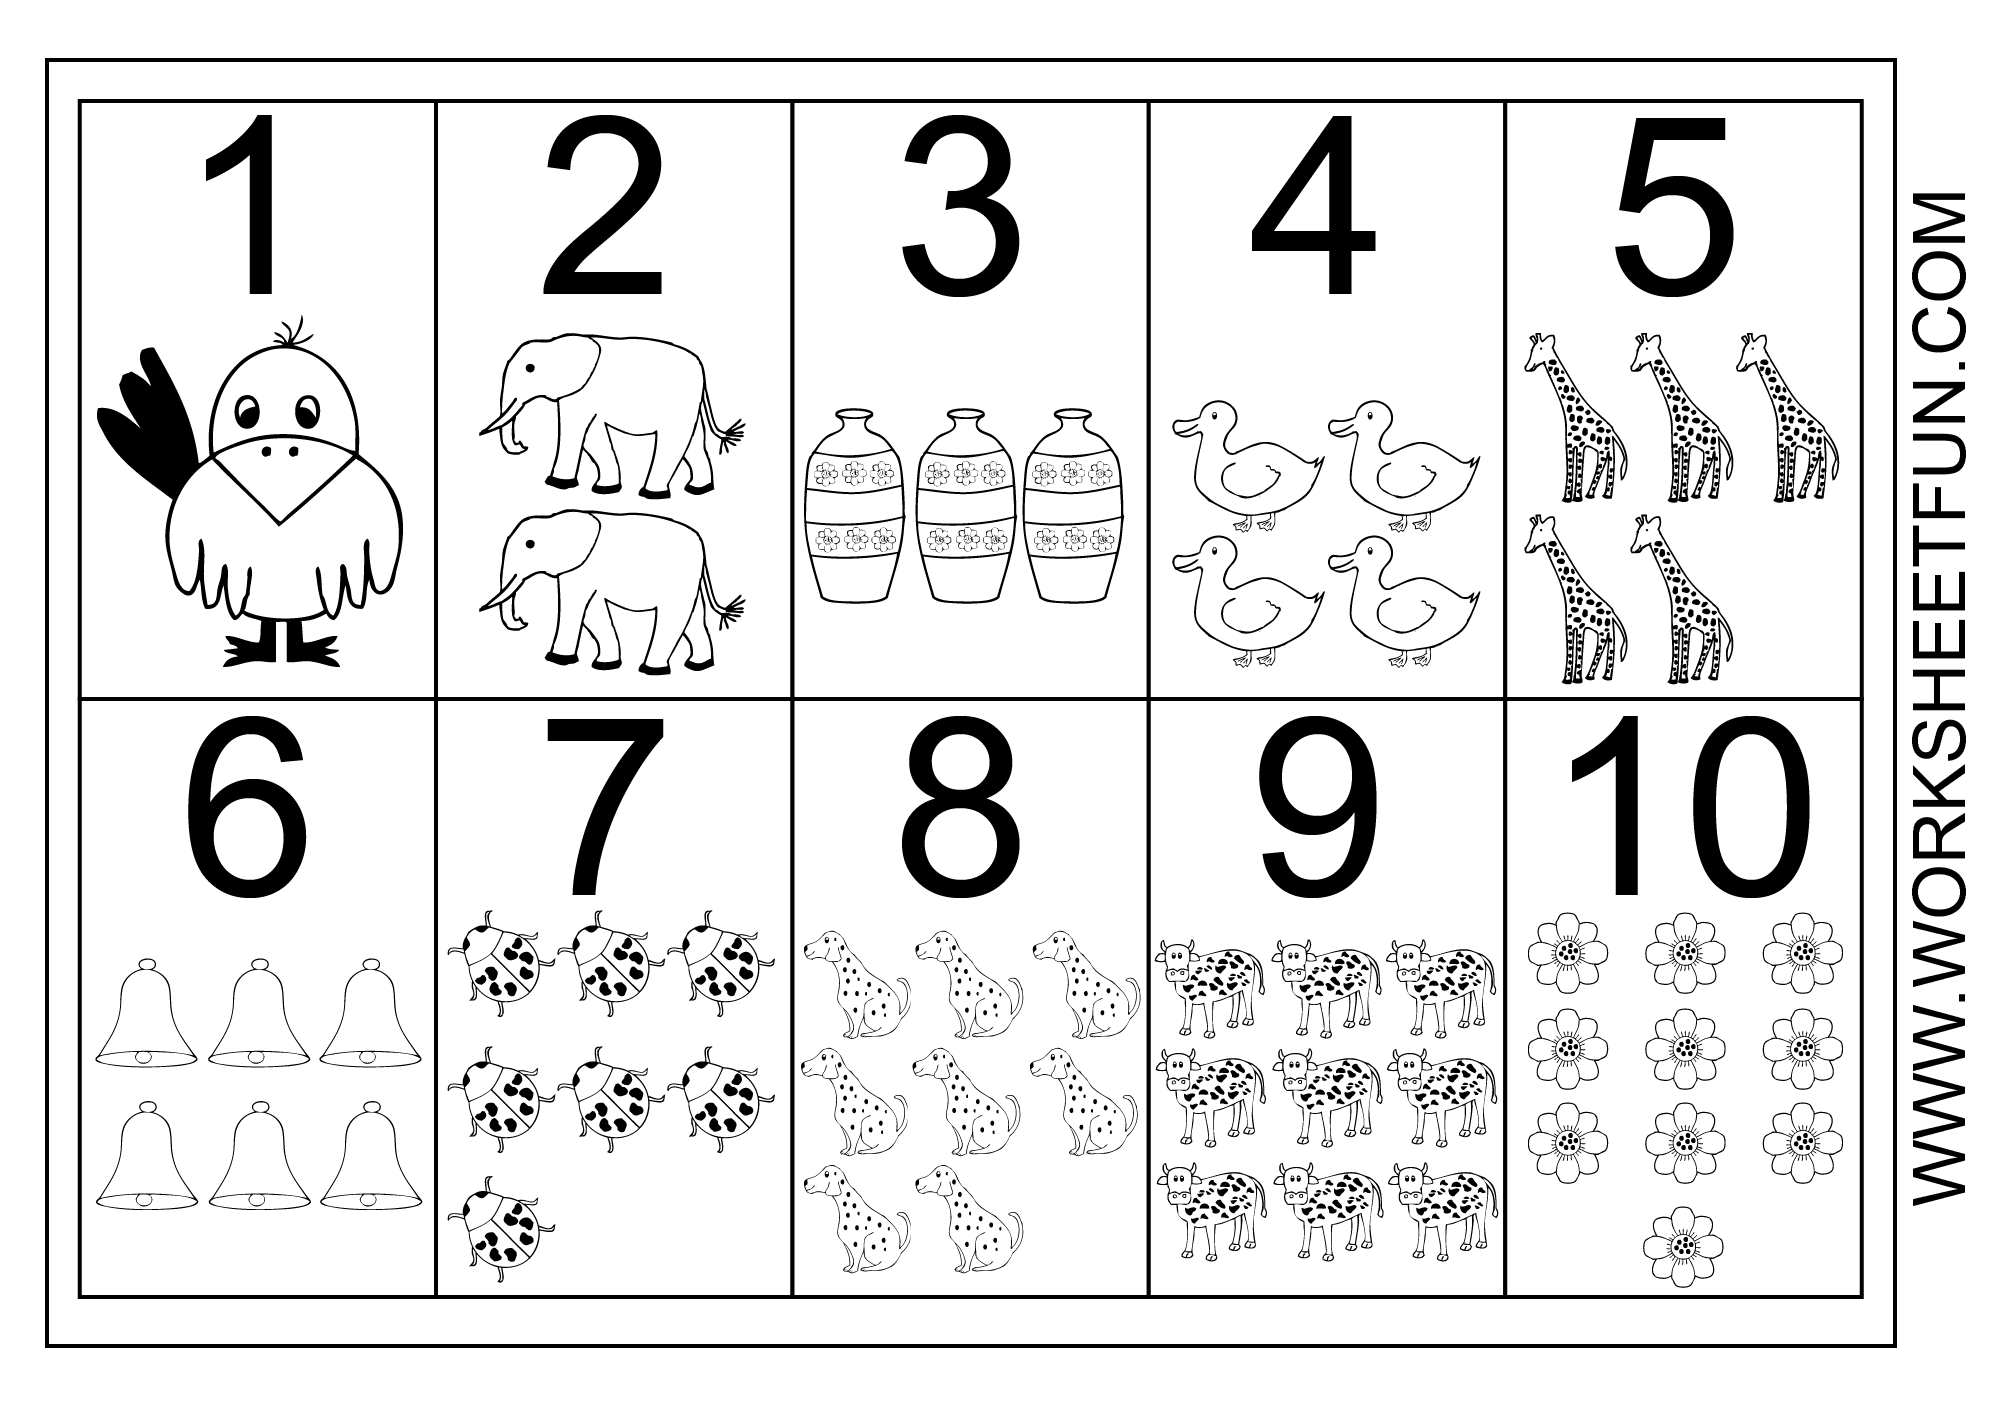 photo relating to Printable Numbers 1-10 identify Think about Selection Chart 1-10 Printable Worksheets Figures